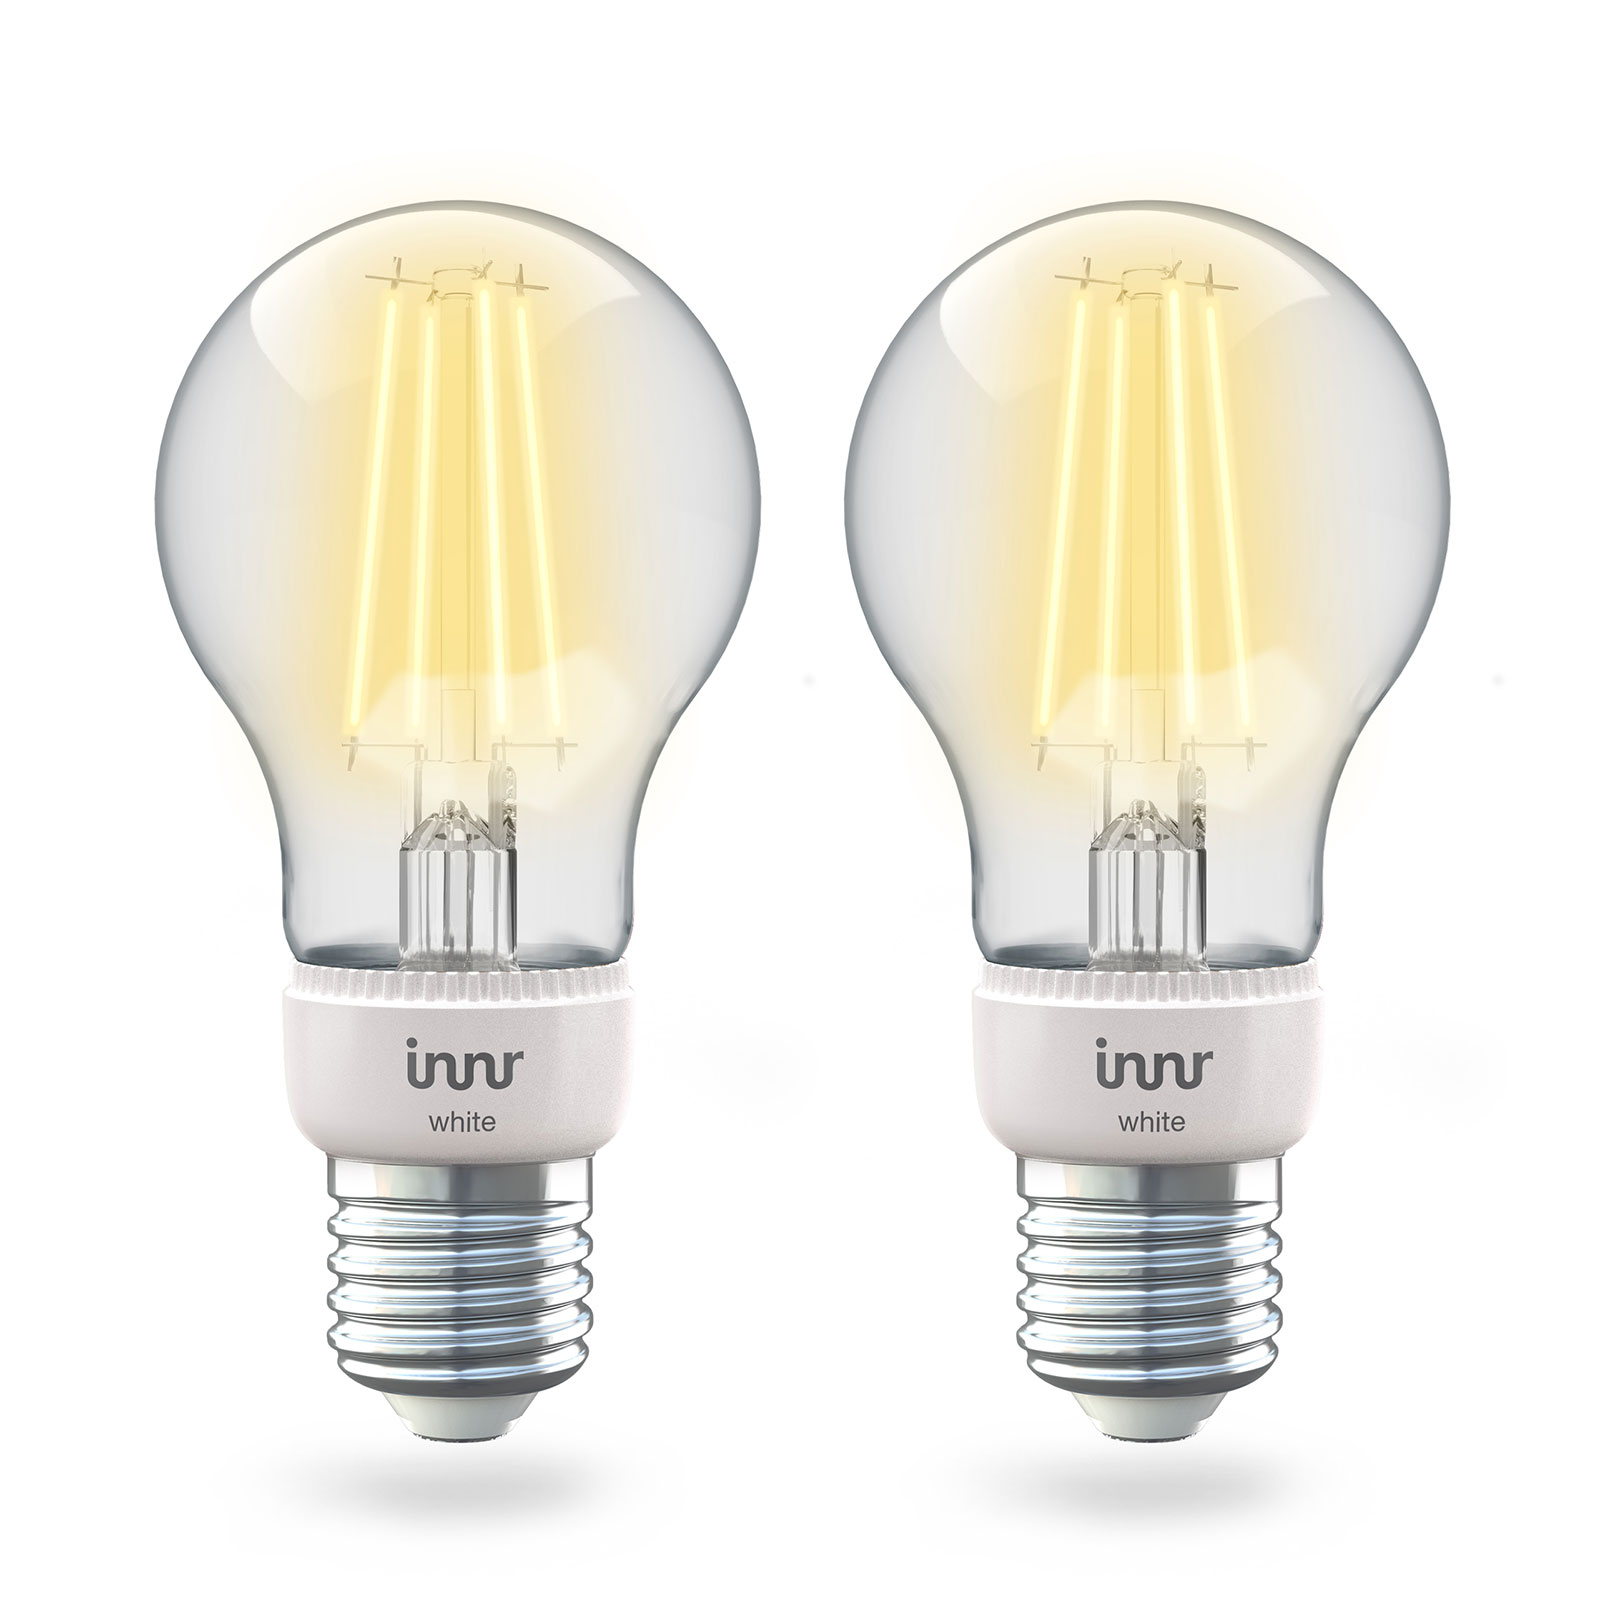 Innr LED E27 6,3W Smart Filament warmweiß 806lm 2x